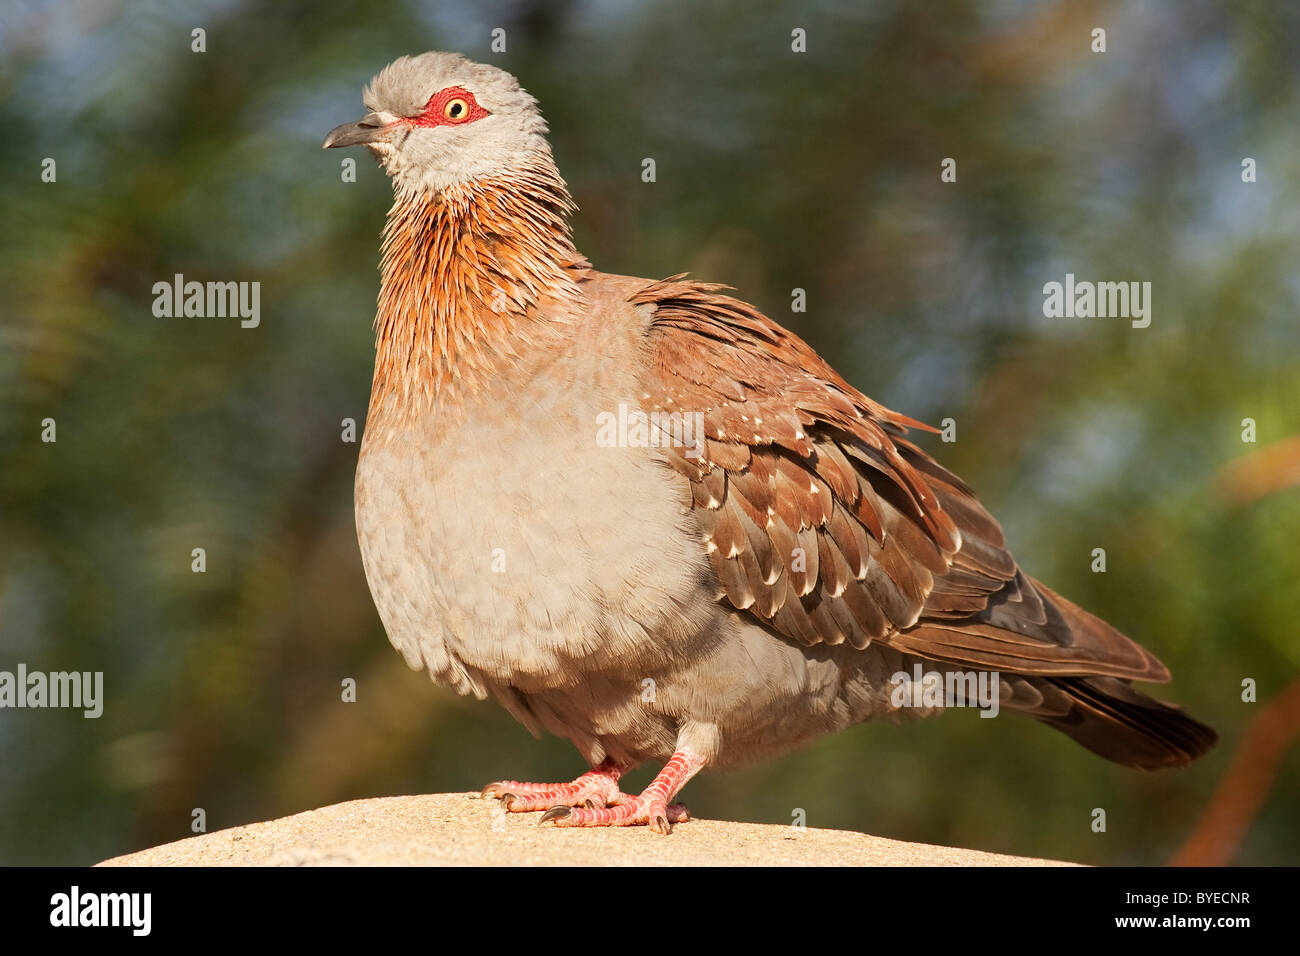 Speckled Pigeon (Columba guinea) standing on a rock. Stock Photo